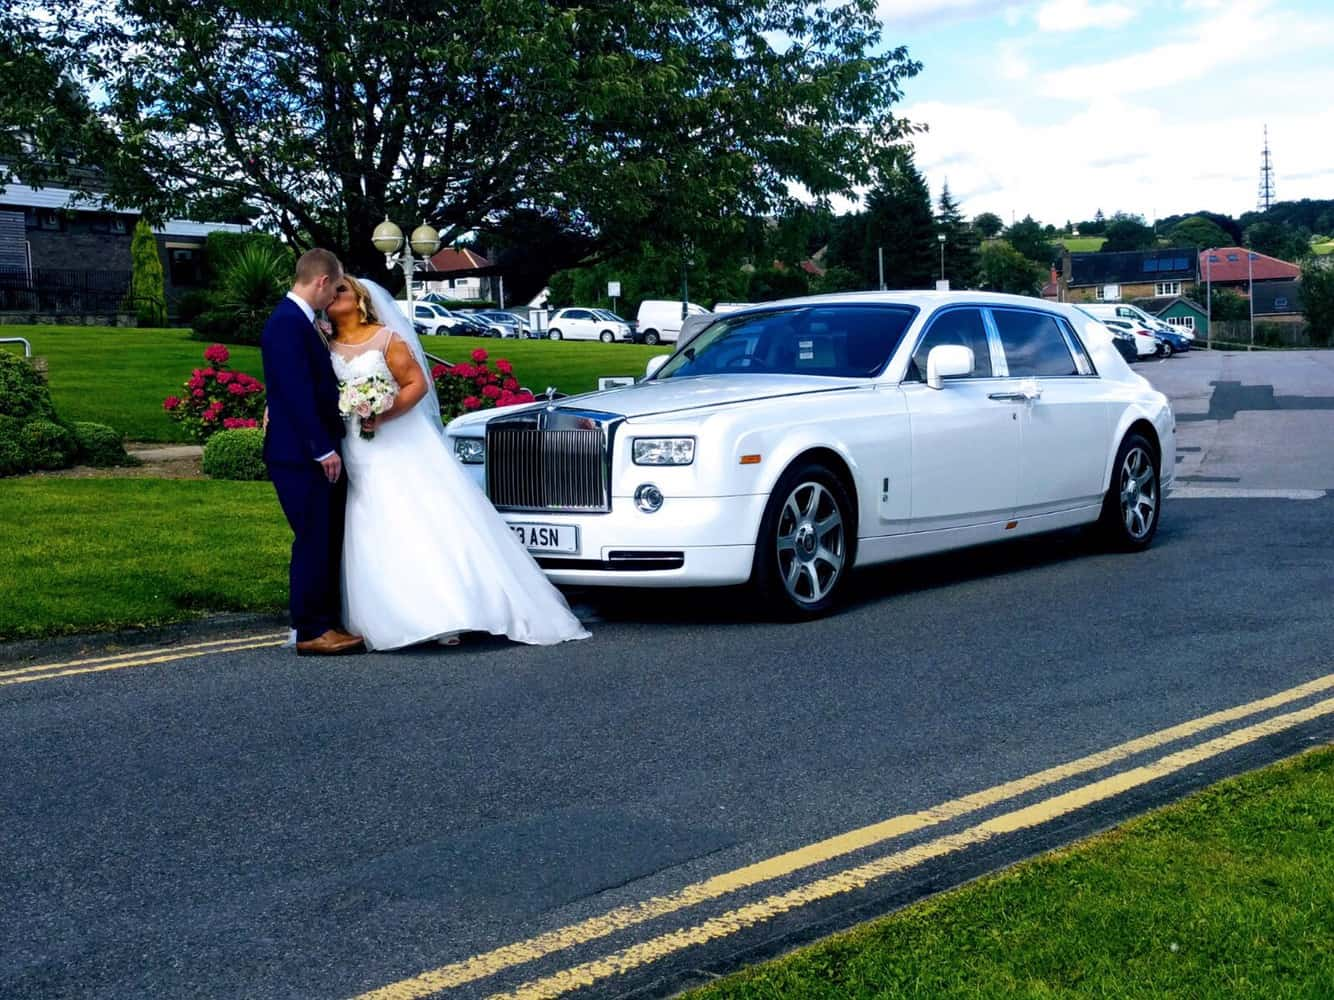 Rolls Royce Phantom Hire Bury